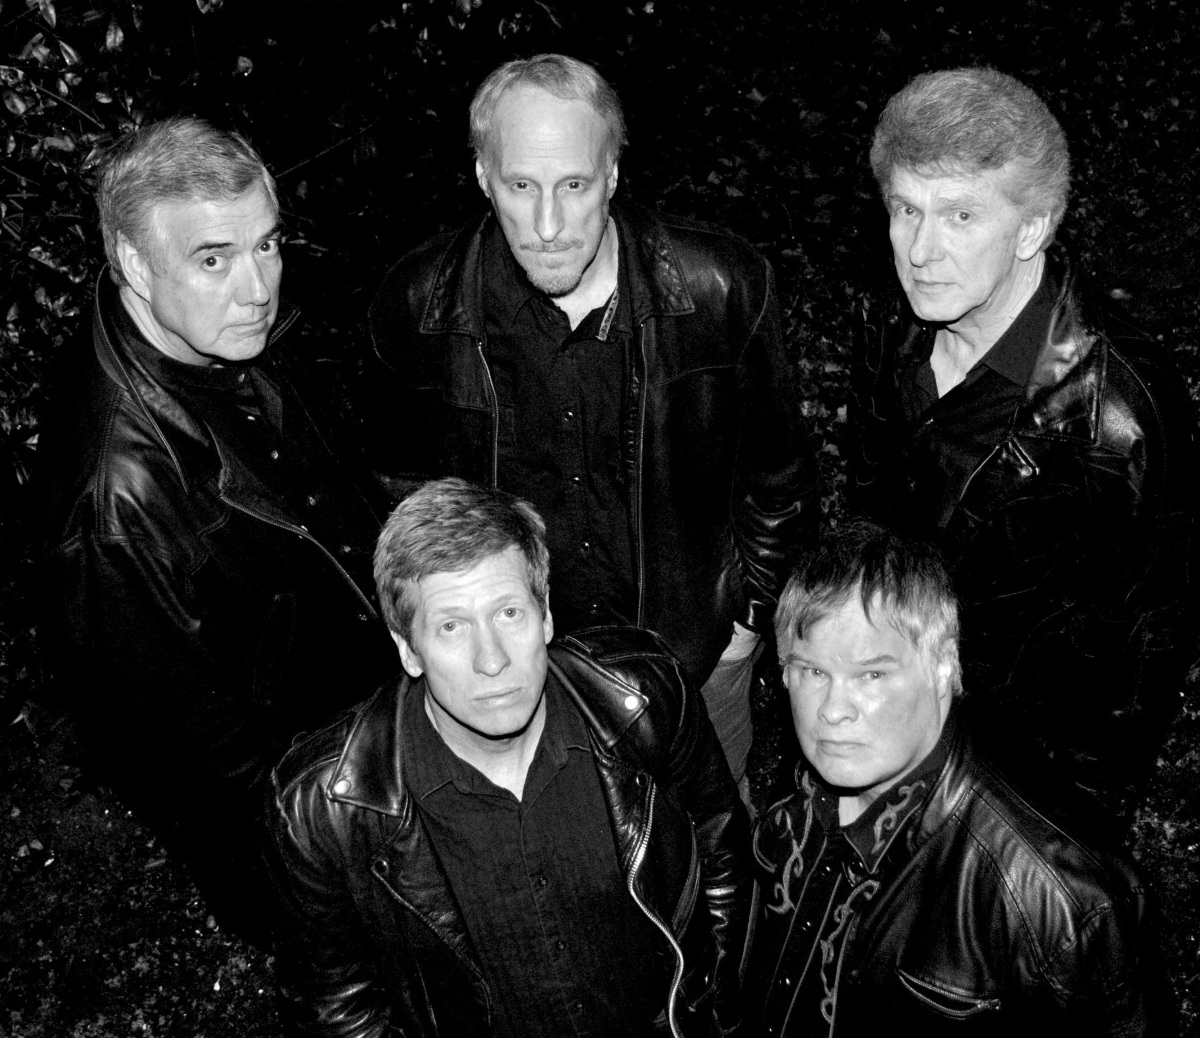 Catch legendary band The Sonics at The Forum